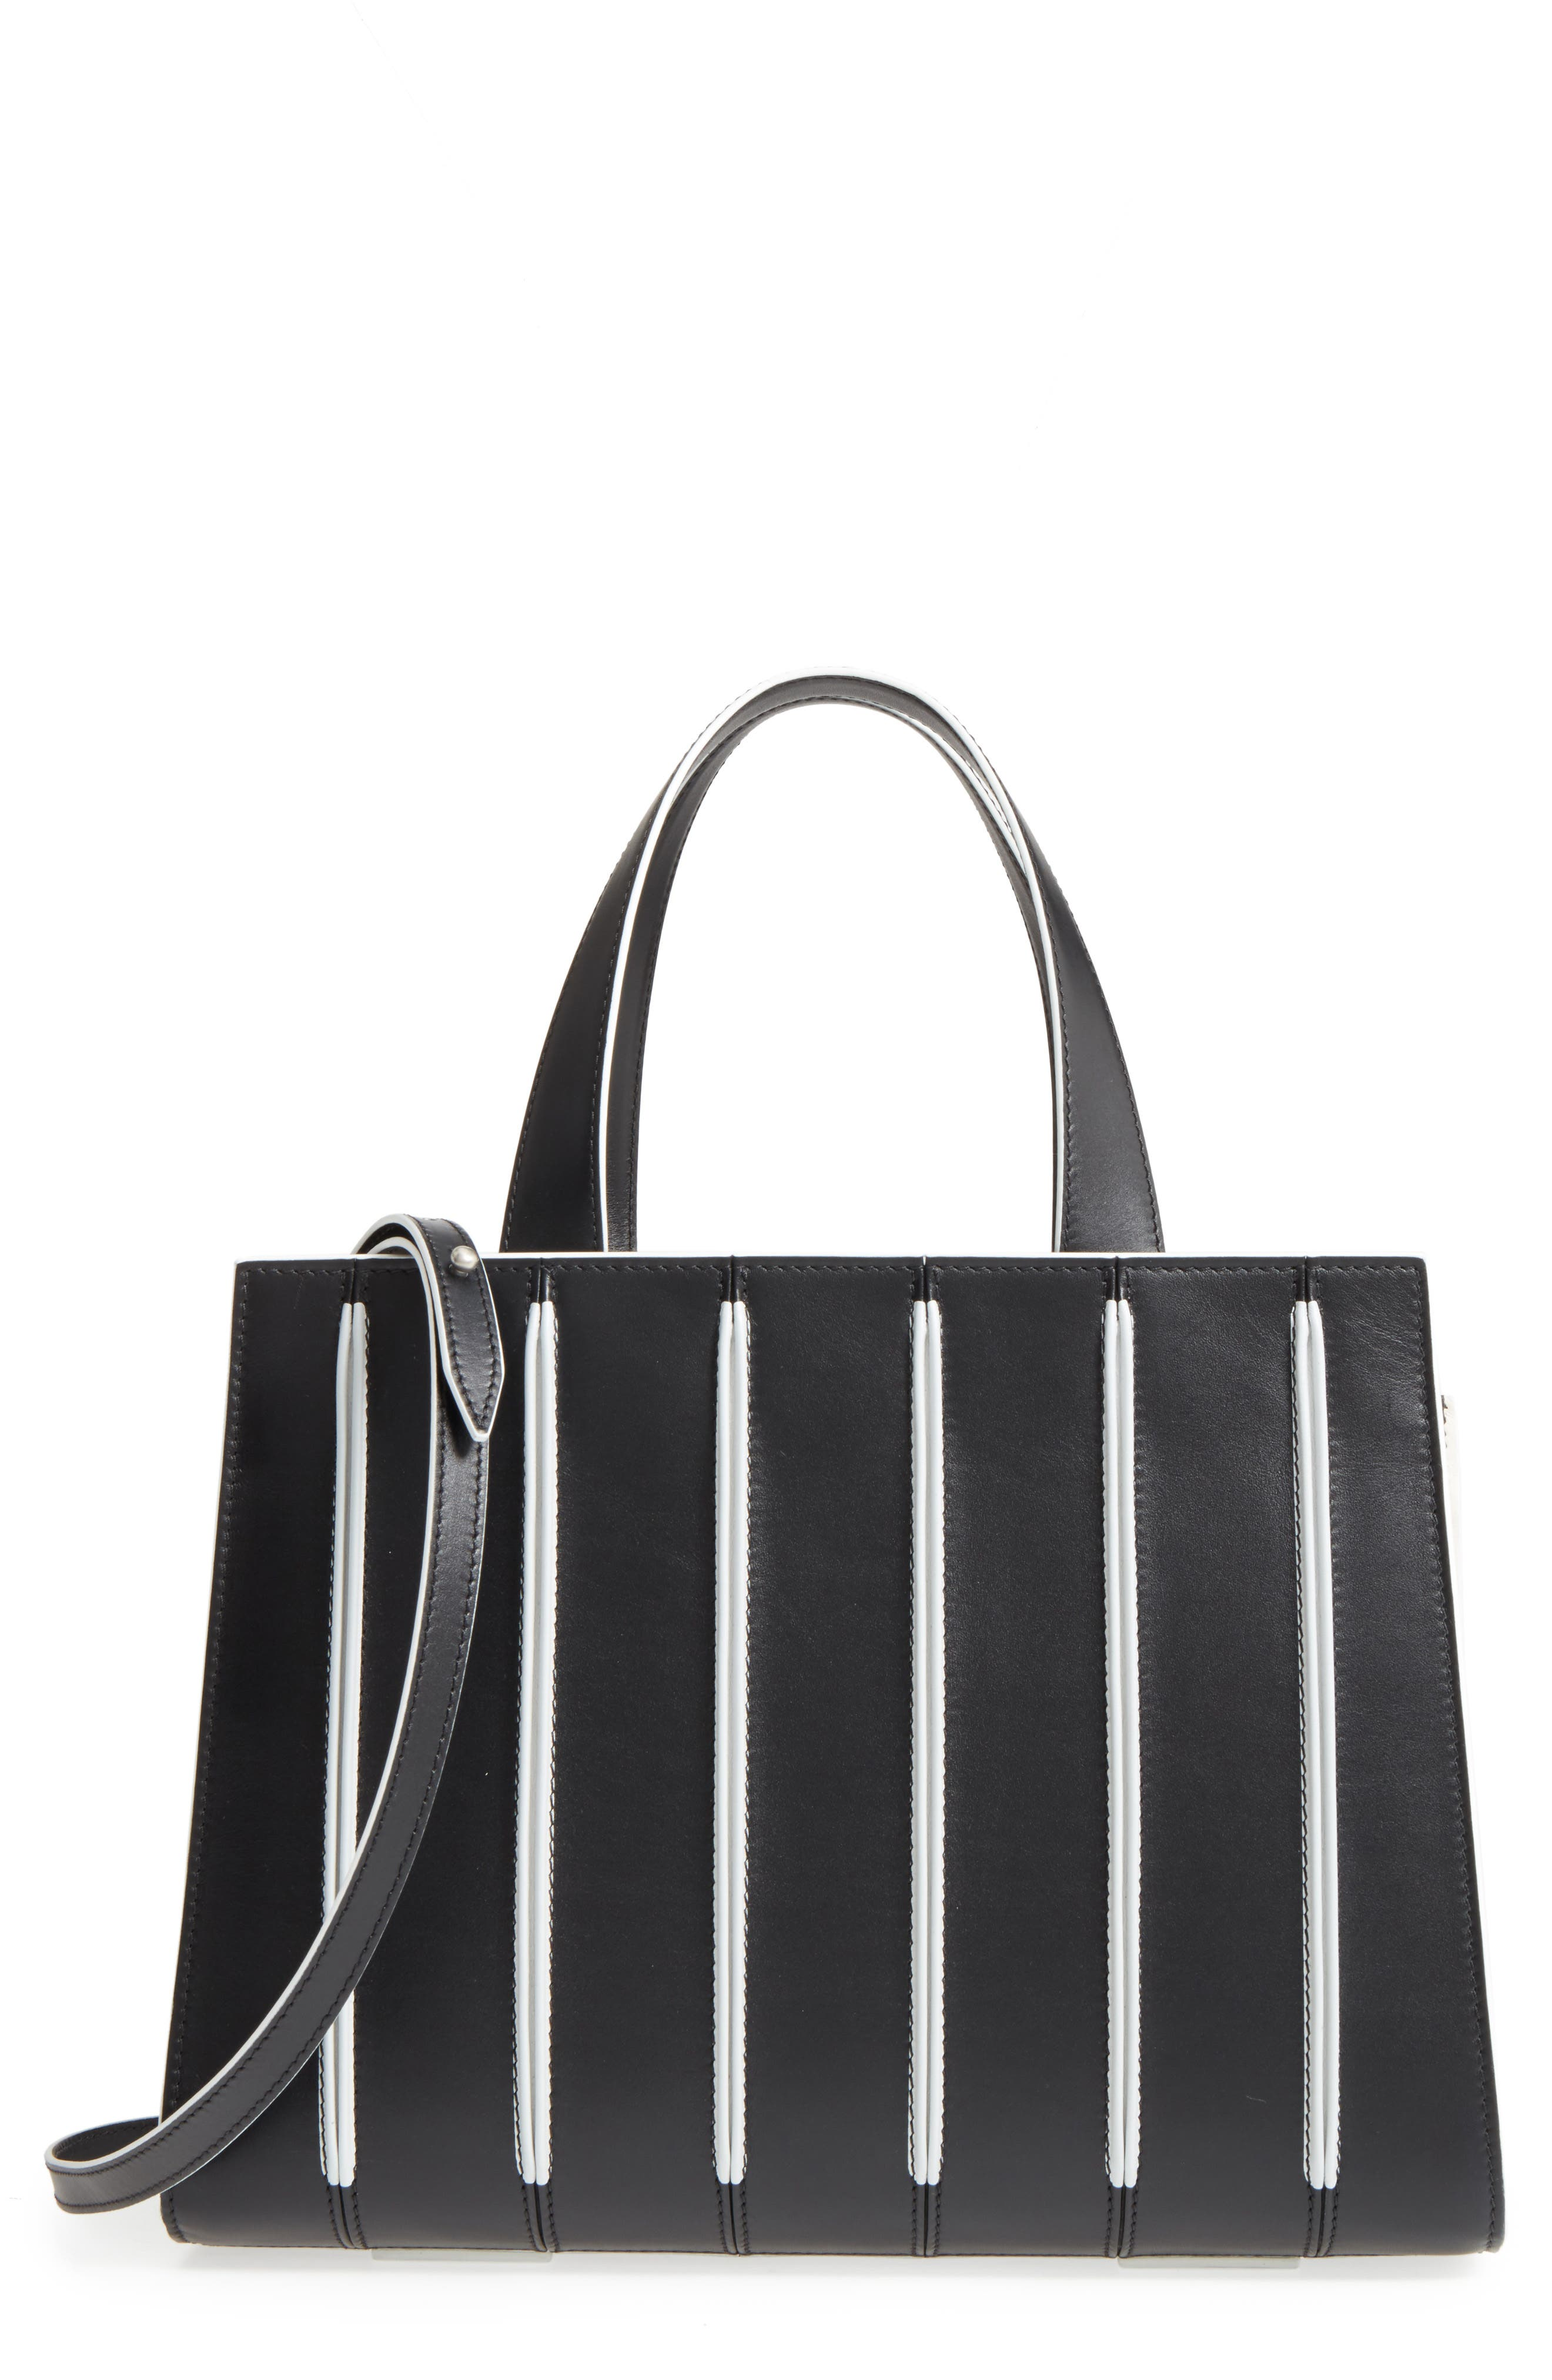 Medium Whitney Leather Tote,                         Main,                         color, 001